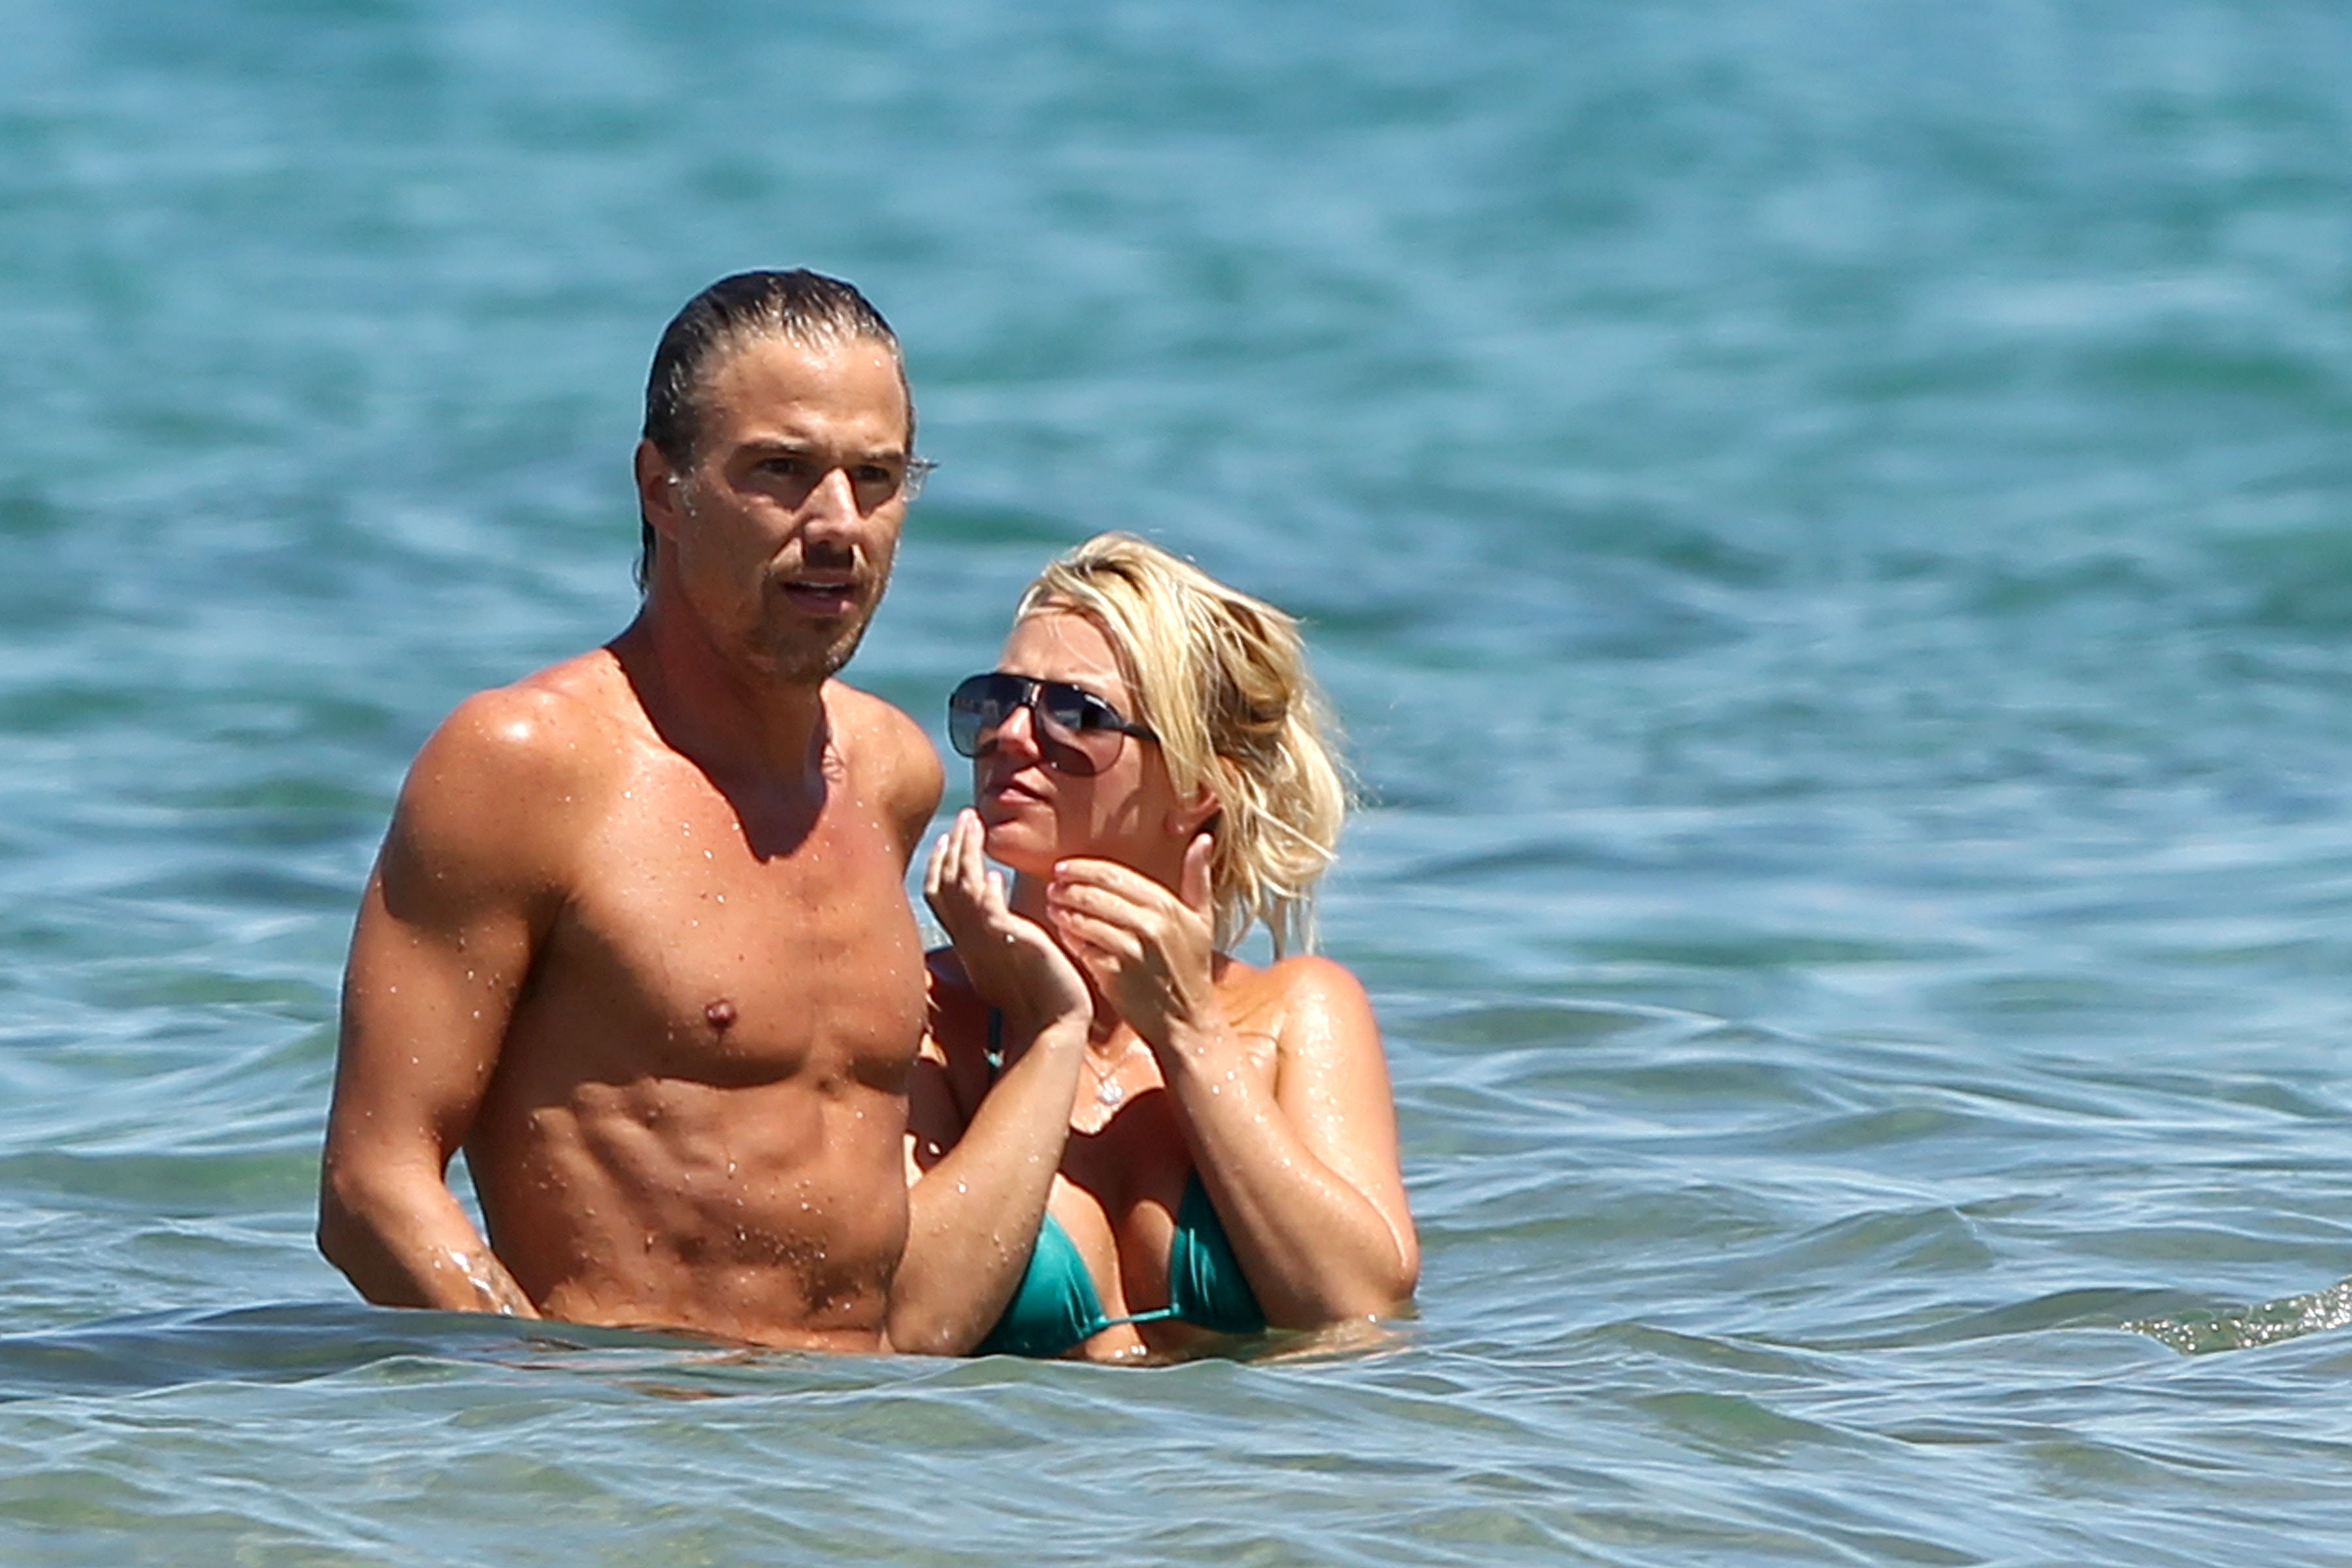 21472_Britney_Spears_on_the_beach_in_Maui_5_122_108lo.jpg